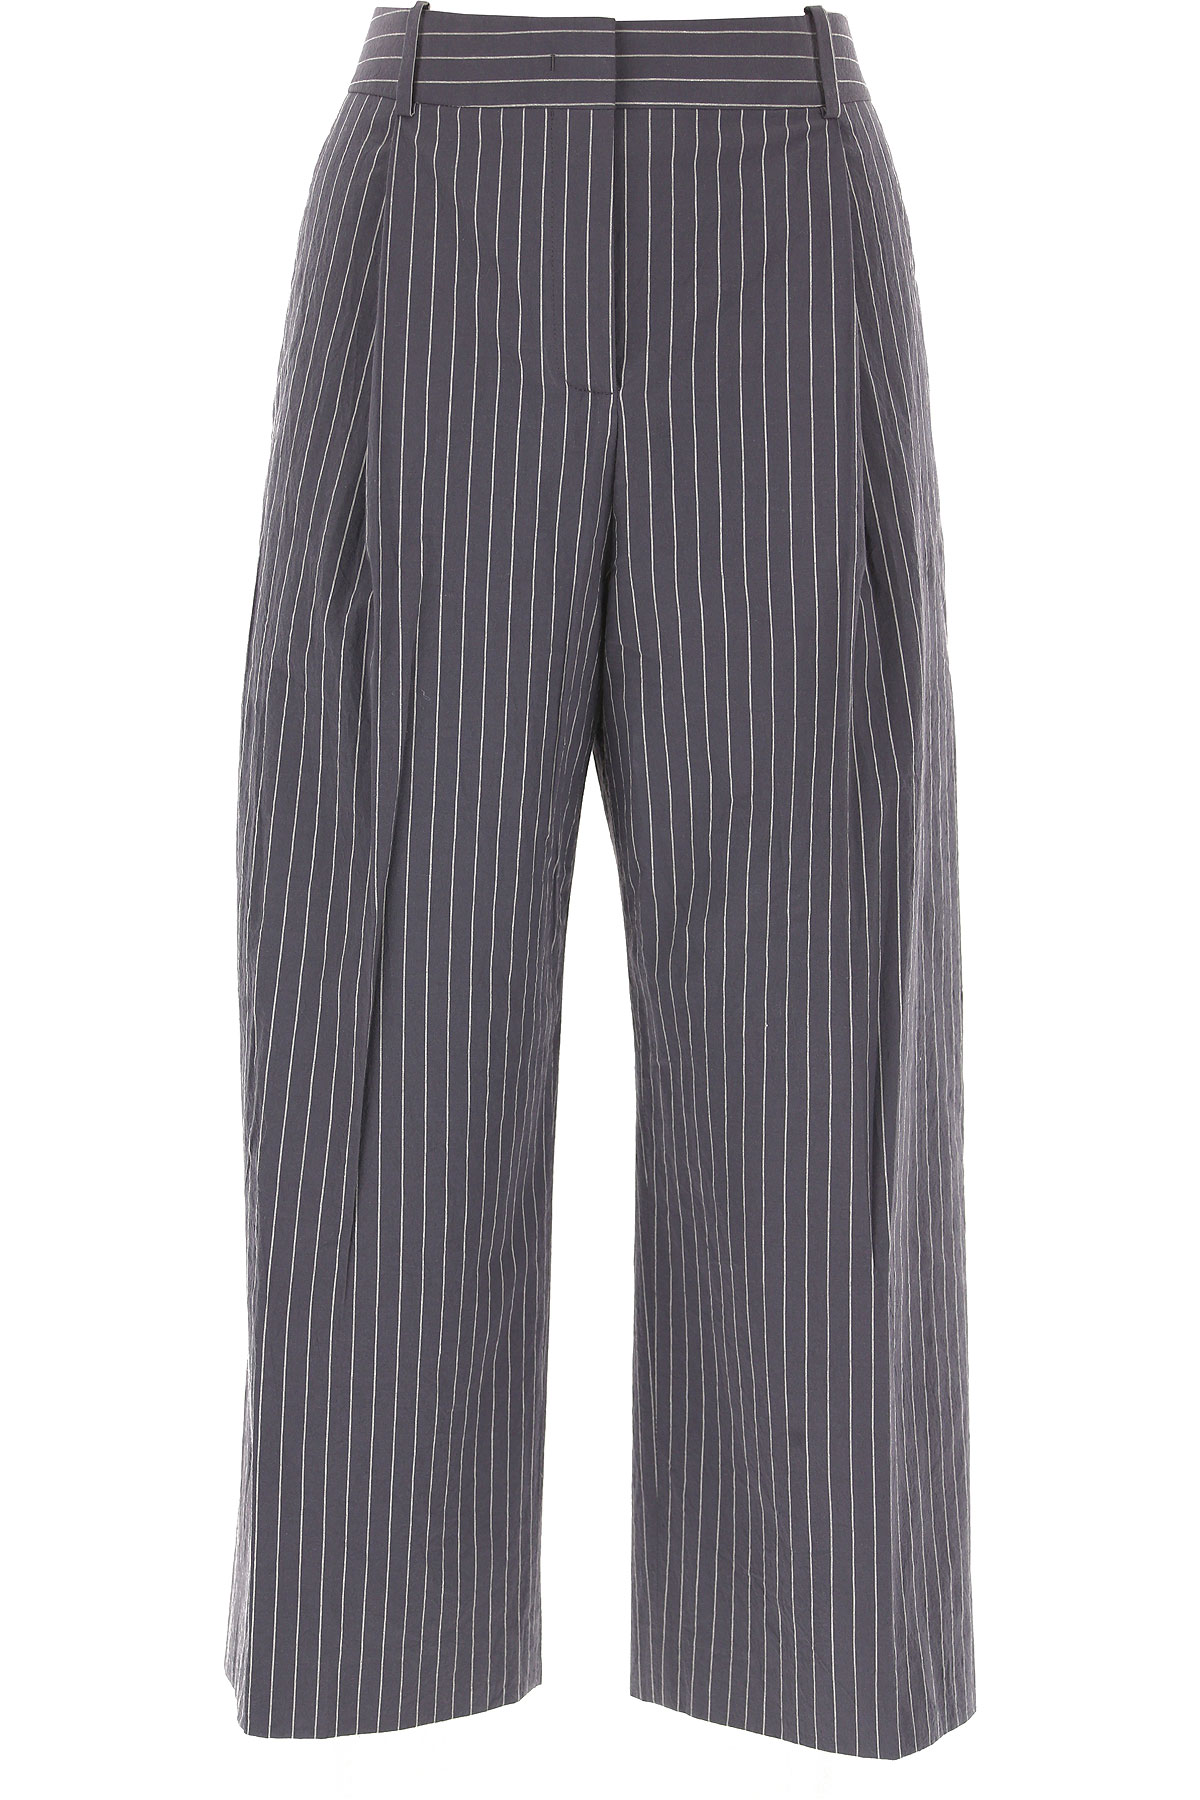 Fabiana Filippi Pants for Women On Sale in Outlet, Grey, Cotton, 2019, 26 28 30 32